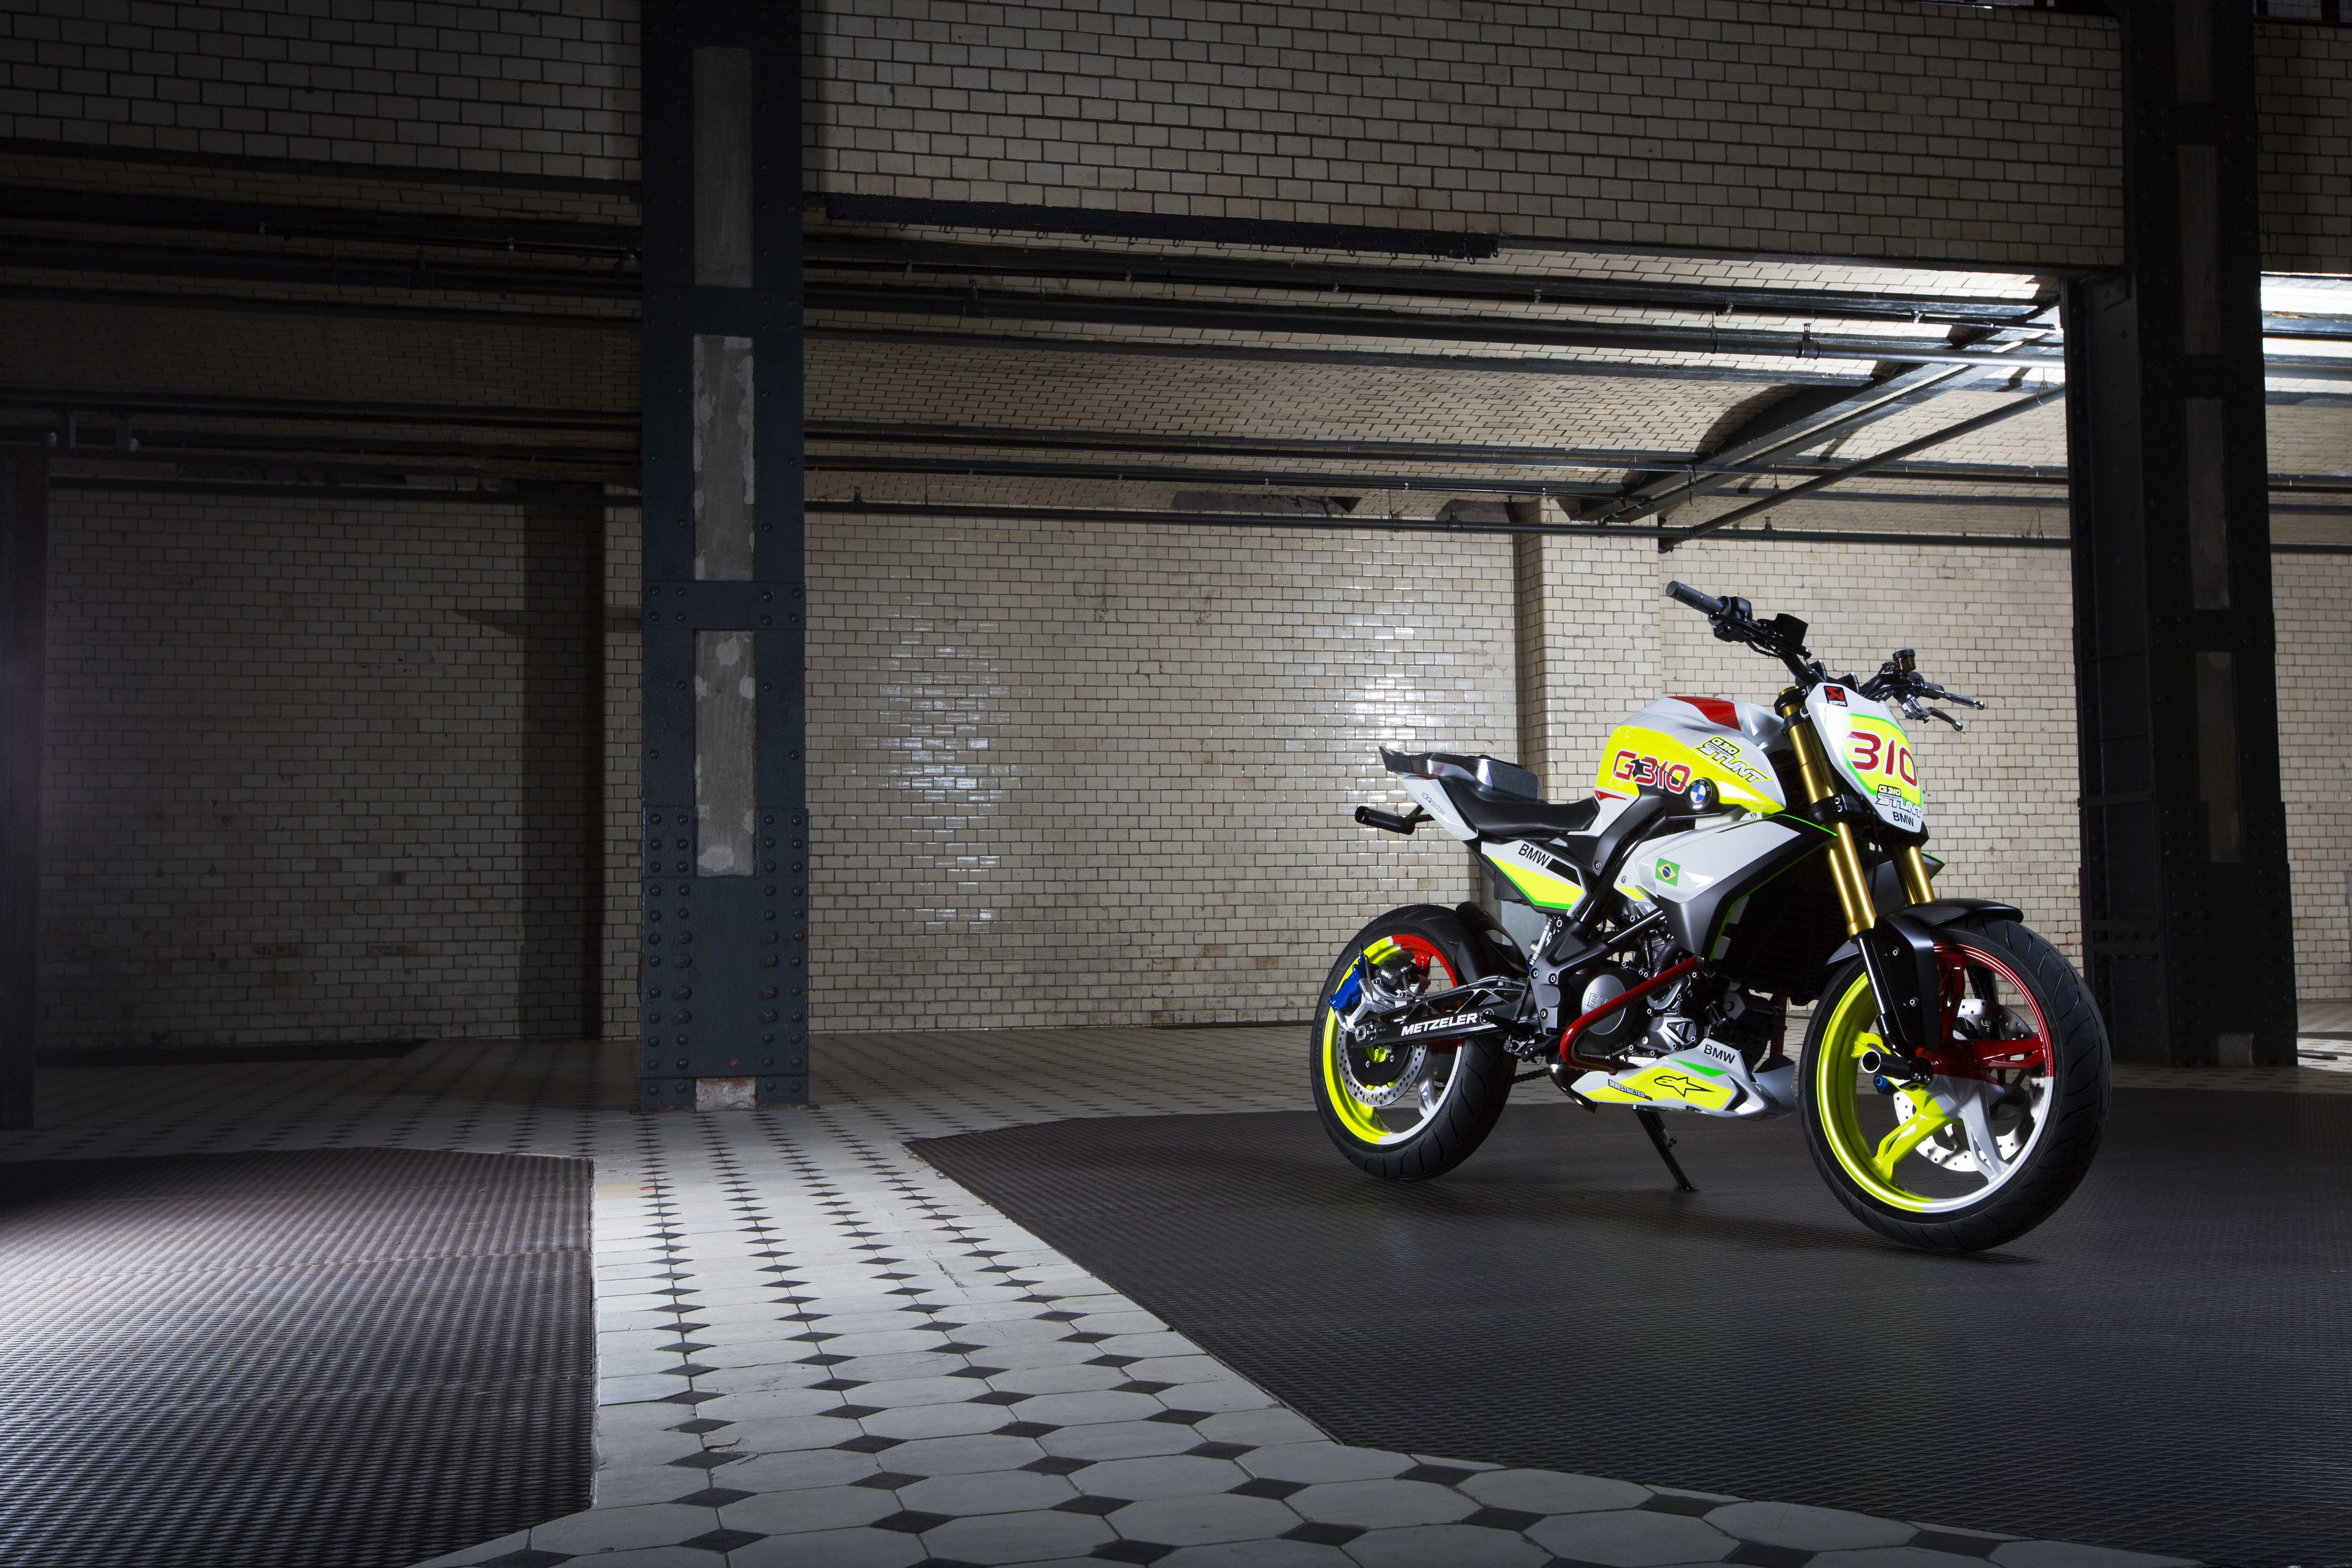 BMW's new 300cc bike revealed in concept form